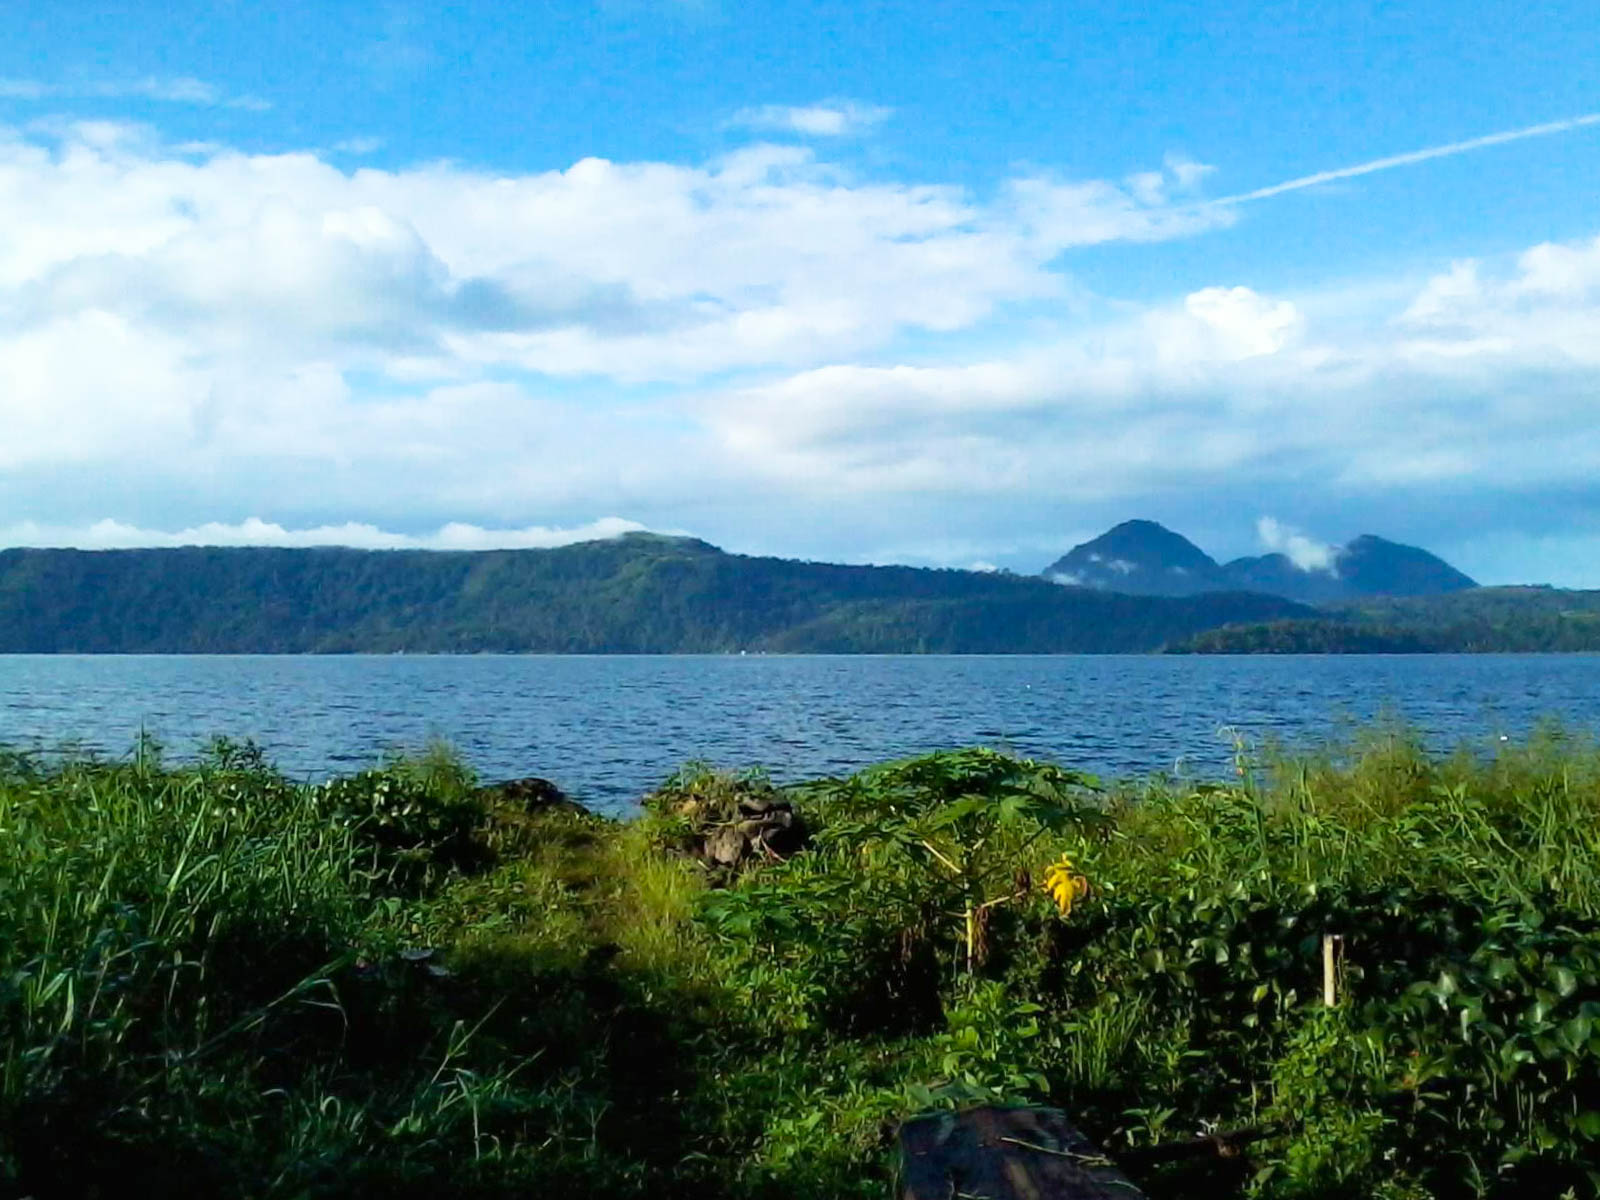 Vegetated land overlooking a vast body of water (Lake Lanao, one of the largest lakes in the Philippines) backdropped by mountains beneath a partially cloudy sky